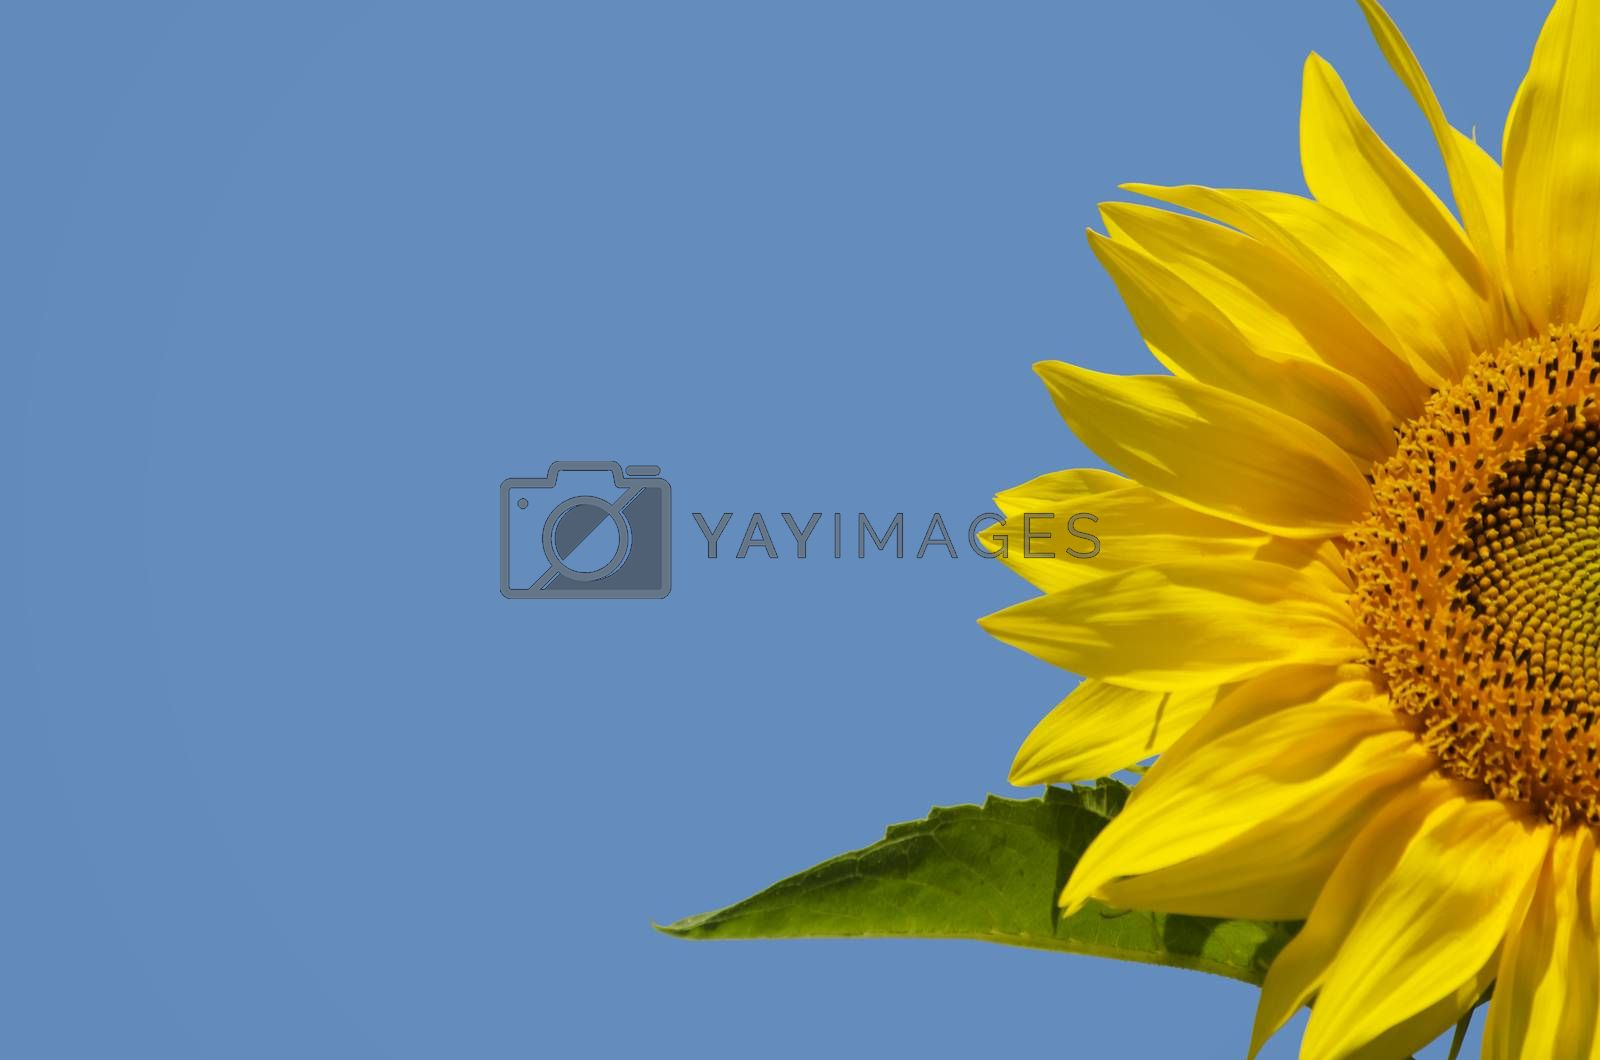 Yellow Sunflower in Summertime Over Blue Bbackground, Copyspace